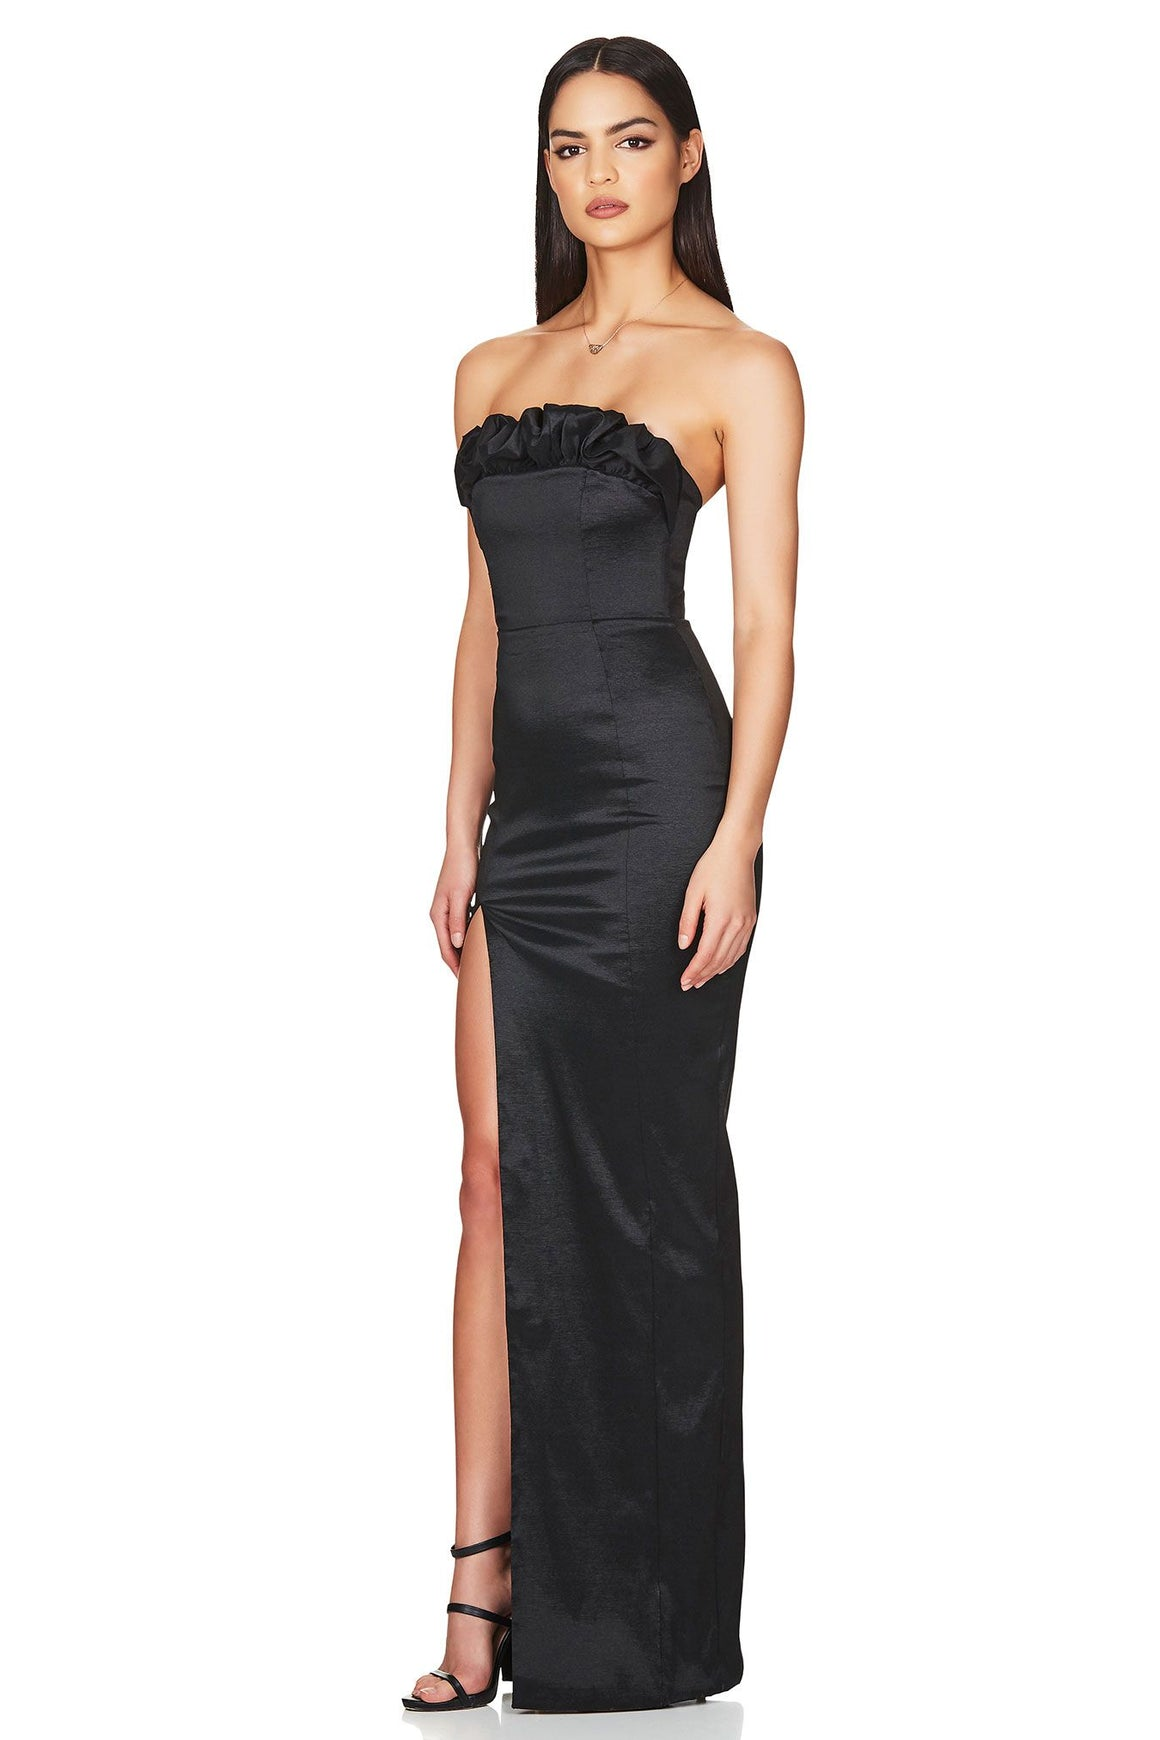 Adore Gown - Black